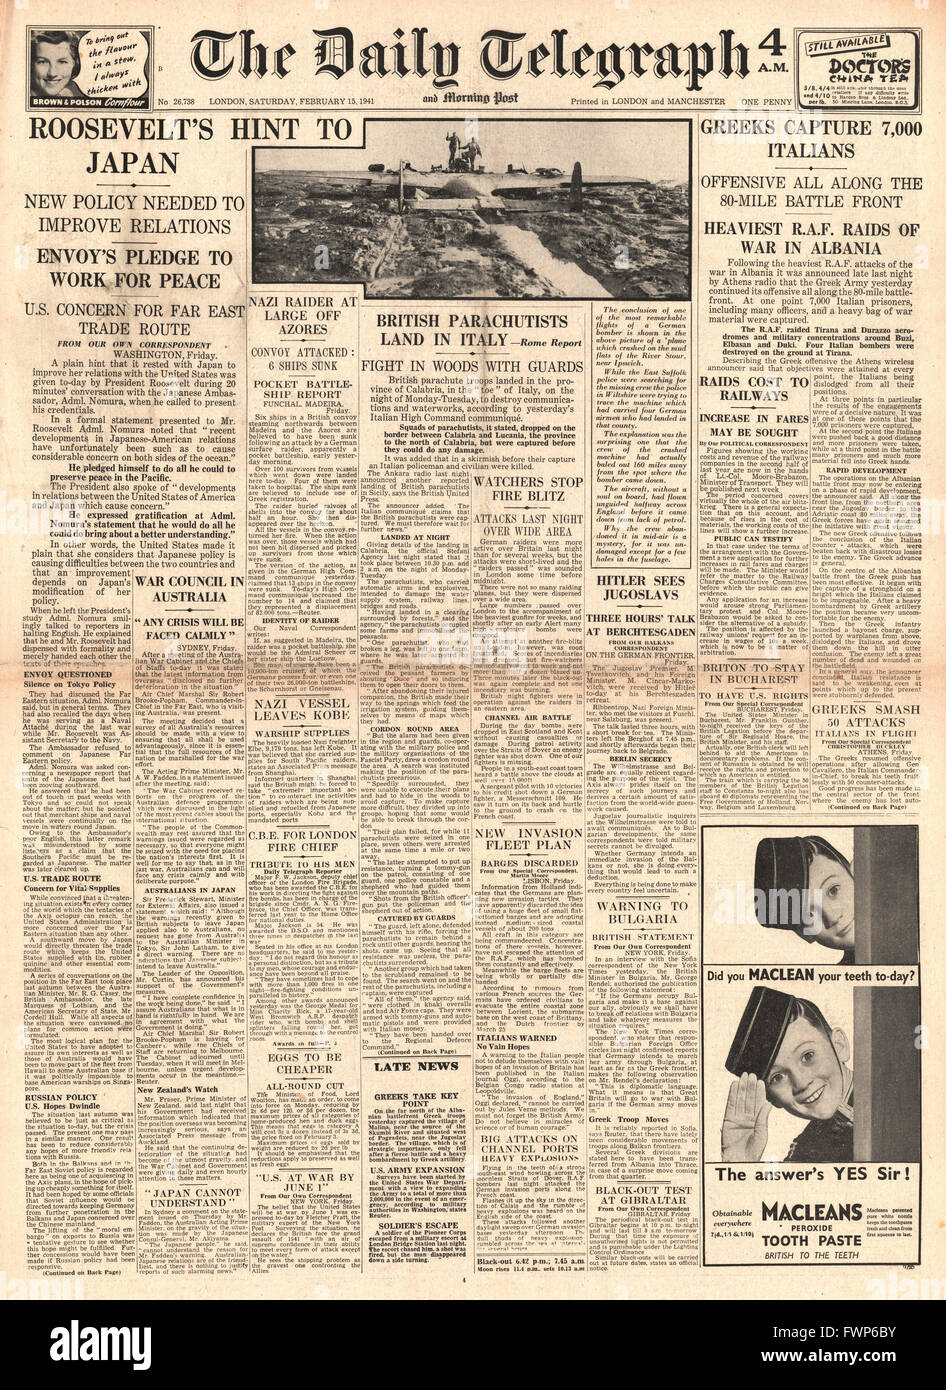 1941 front page Daily Telegraph British Paratroopers land in Southern Italy, Greek forces capture thousands of Italian - Stock Image